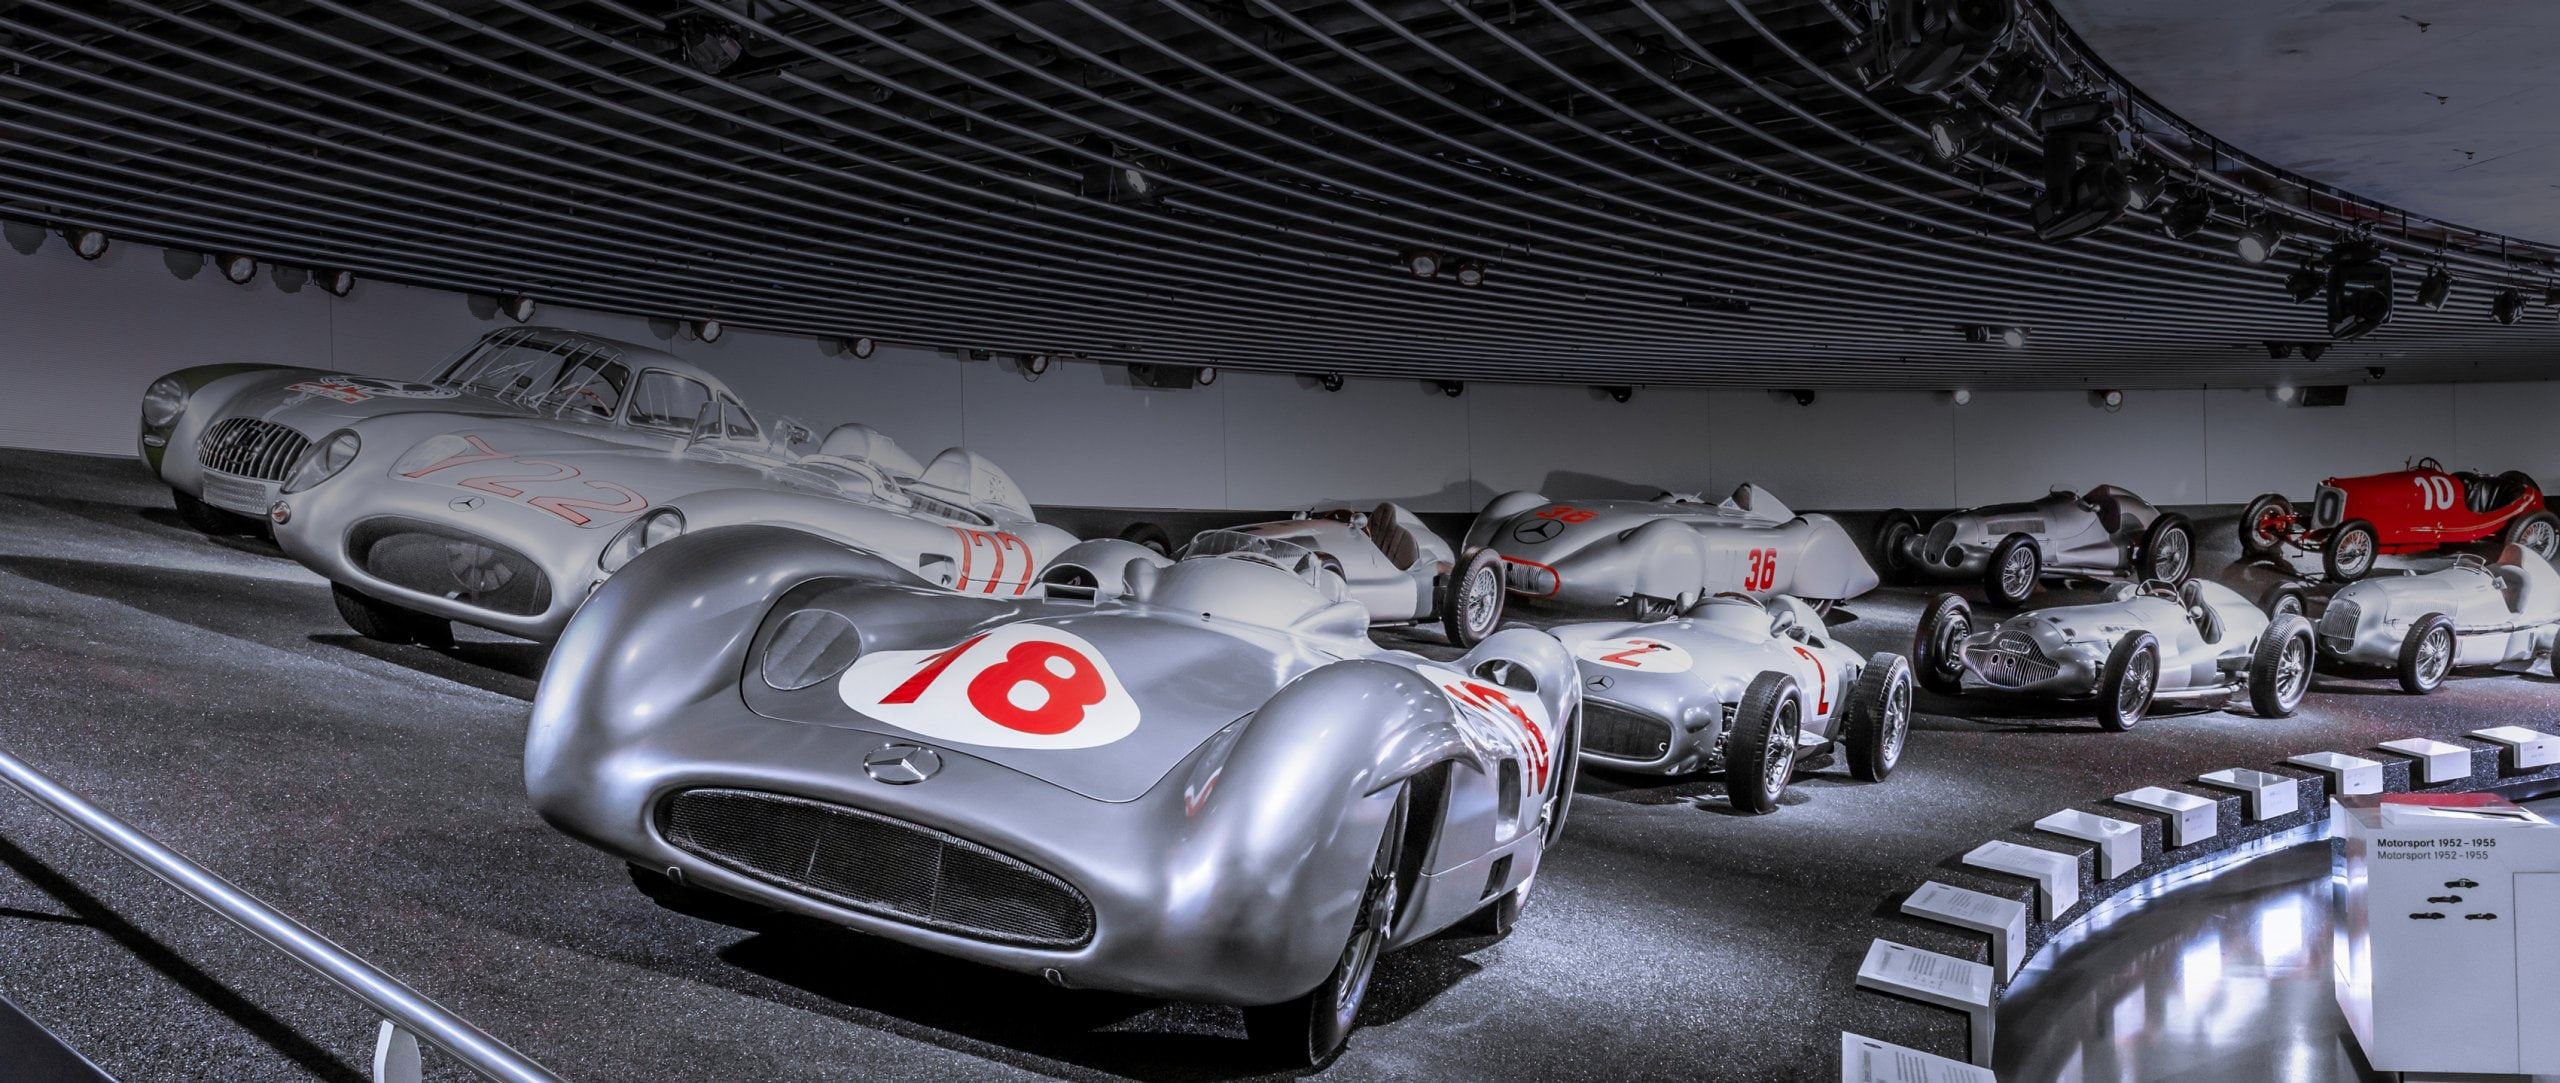 Vehicles in the Mercedes-Benz Museum in Stuttgart